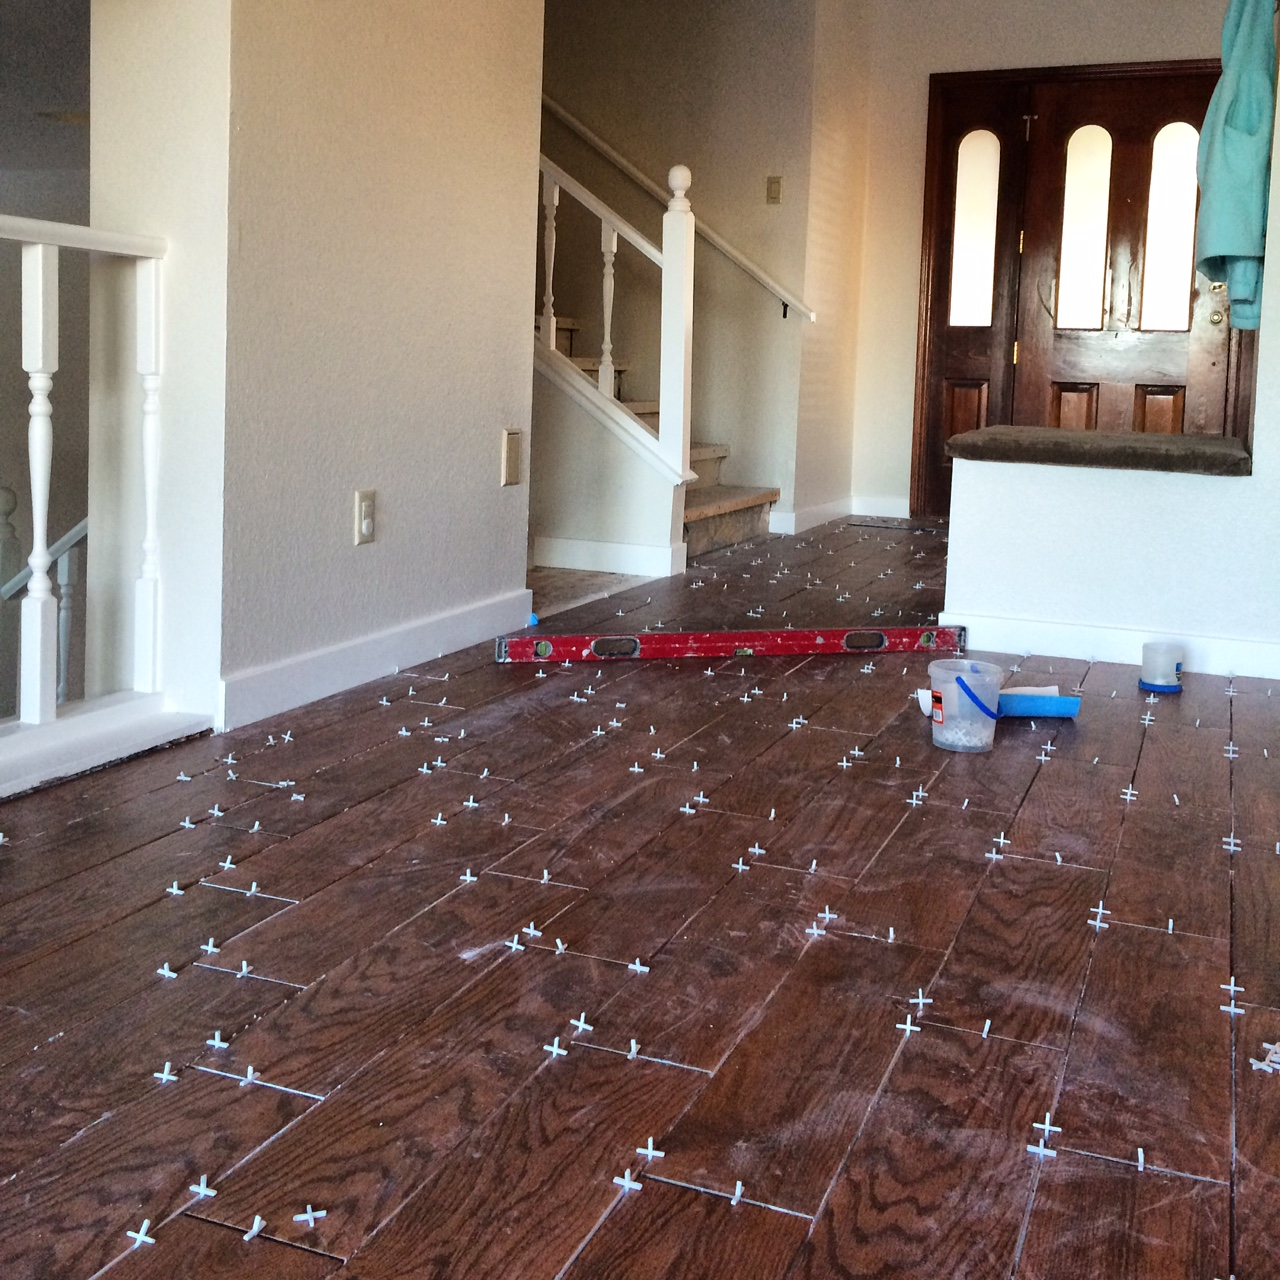 Wood tile flooring renovation diary gina demillo wagner img7059 dailygadgetfo Images